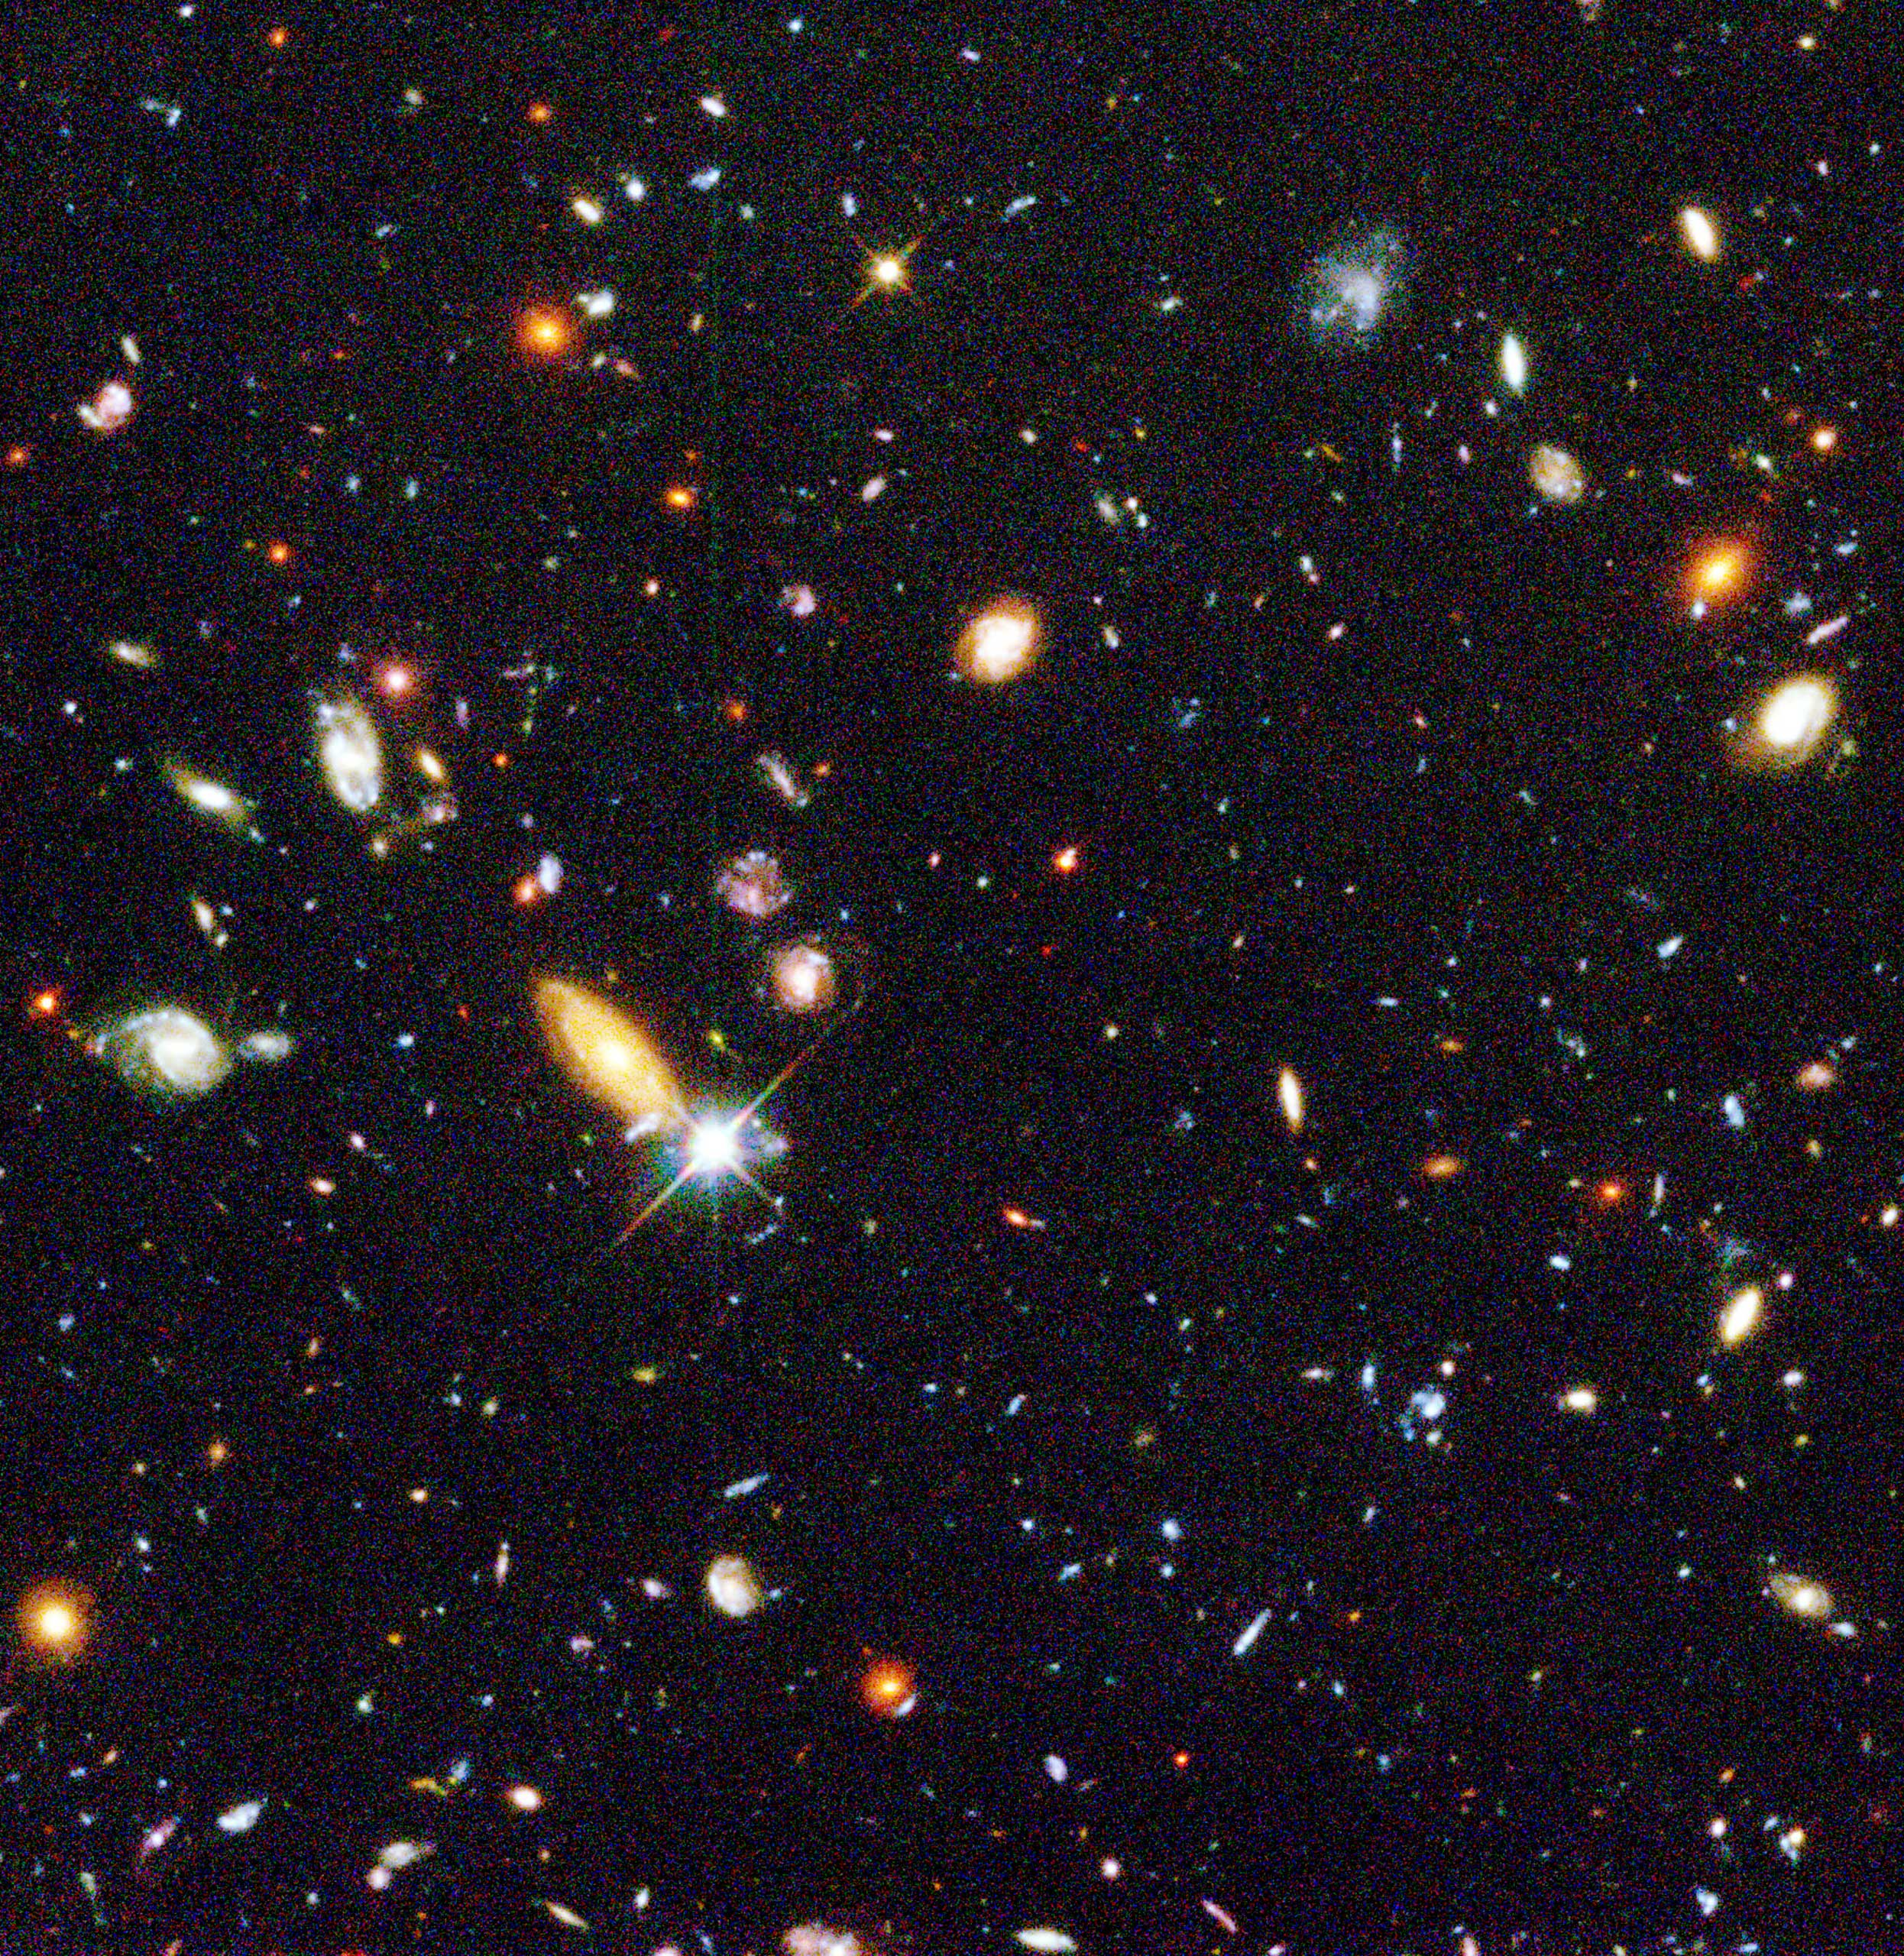 The Hubble Deep Field:                               Mankind's deepest, most detailed optical view of the universe  was assembled from 342 separate exposures taken with the Wide Field and Planetary Camera 2 (WFPC2). Essentially a narrow, deep  core sample  of sky, the HDF is analogous to a geologic core sample of the Earth's crust. Just as a terrestrial core sample is a history of events which took place as Earth's surface evolved, the HDF image contains information about the universe at many different stages in time.Image released on Jan. 15, 1996